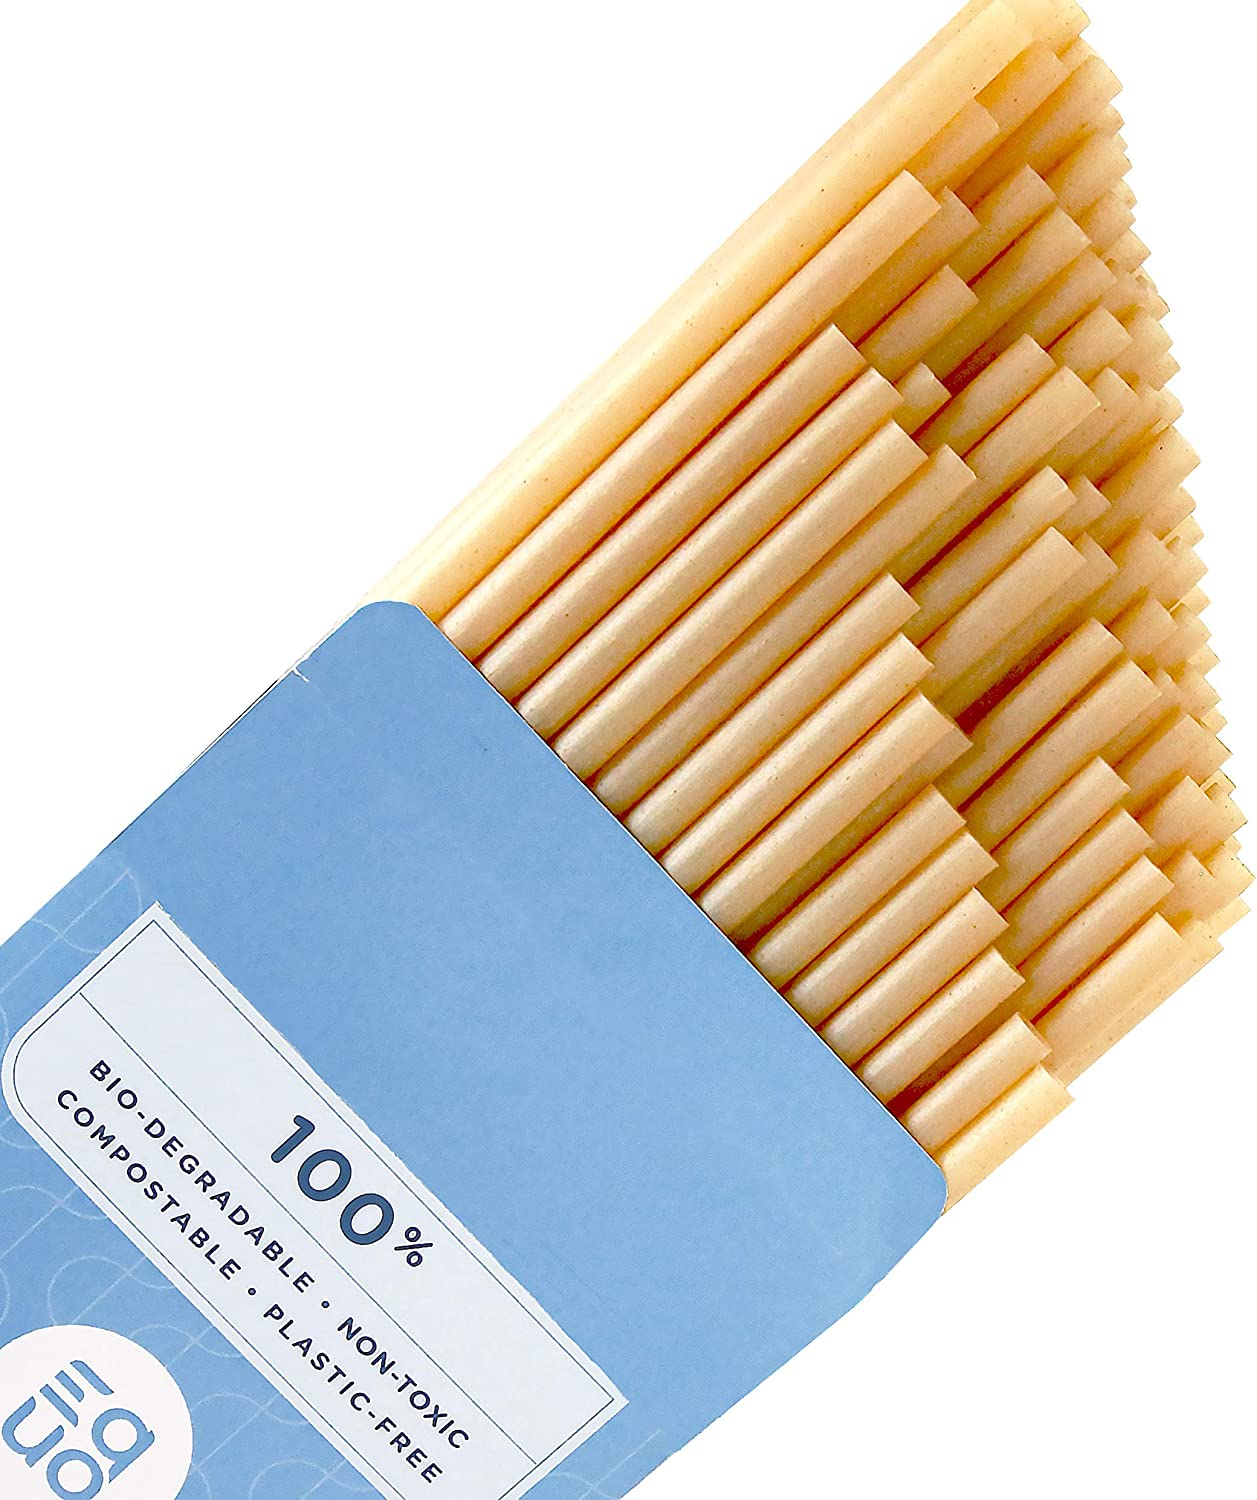 EQUO Overseas parallel import regular item Sugarcane Drinking Straws Compostable Biodegradable and Complete Free Shipping